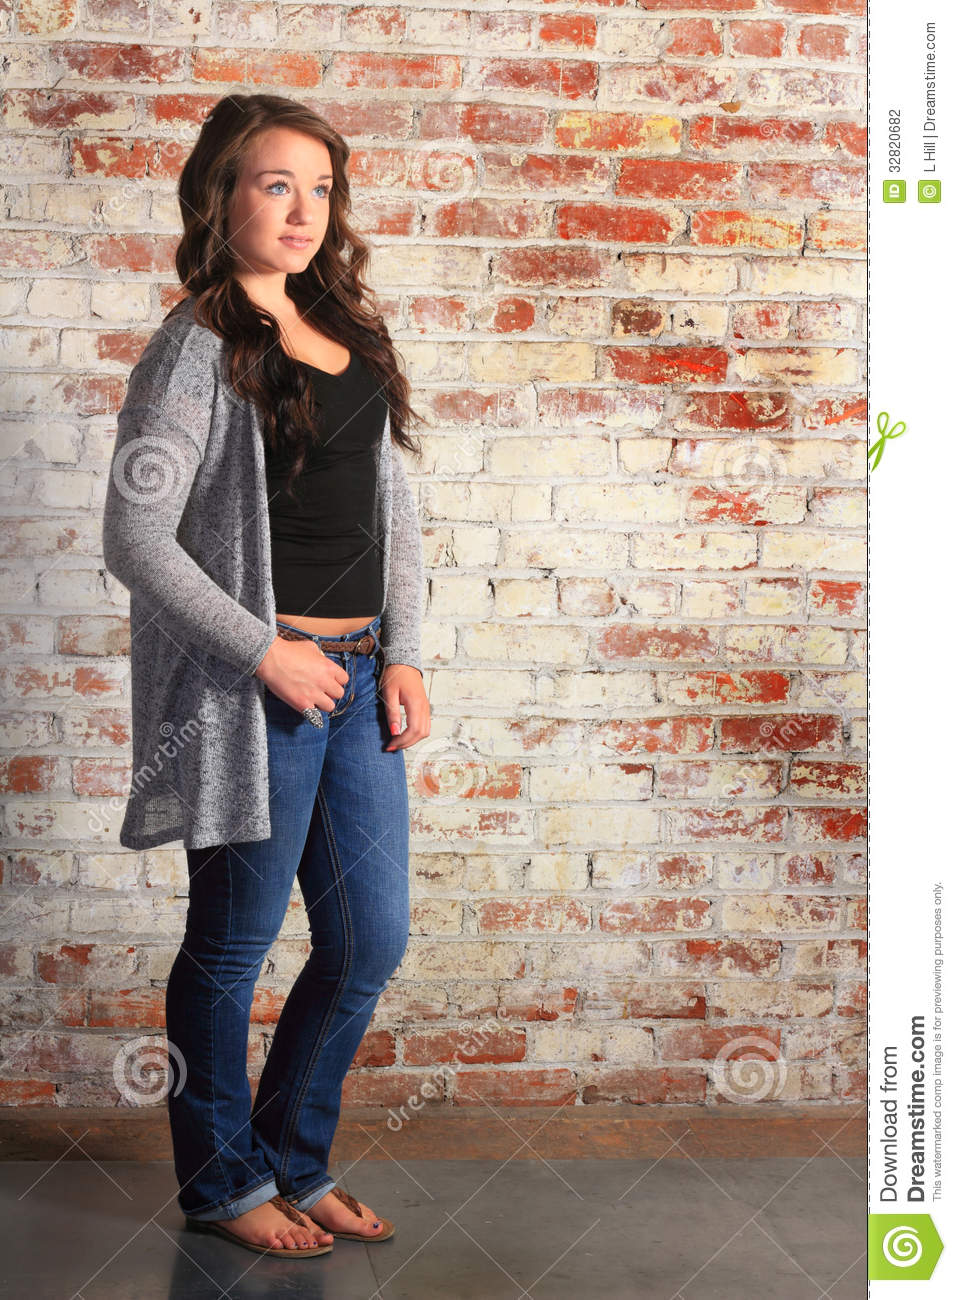 pretty typical teenage girl standing relaxed by a brick wall.